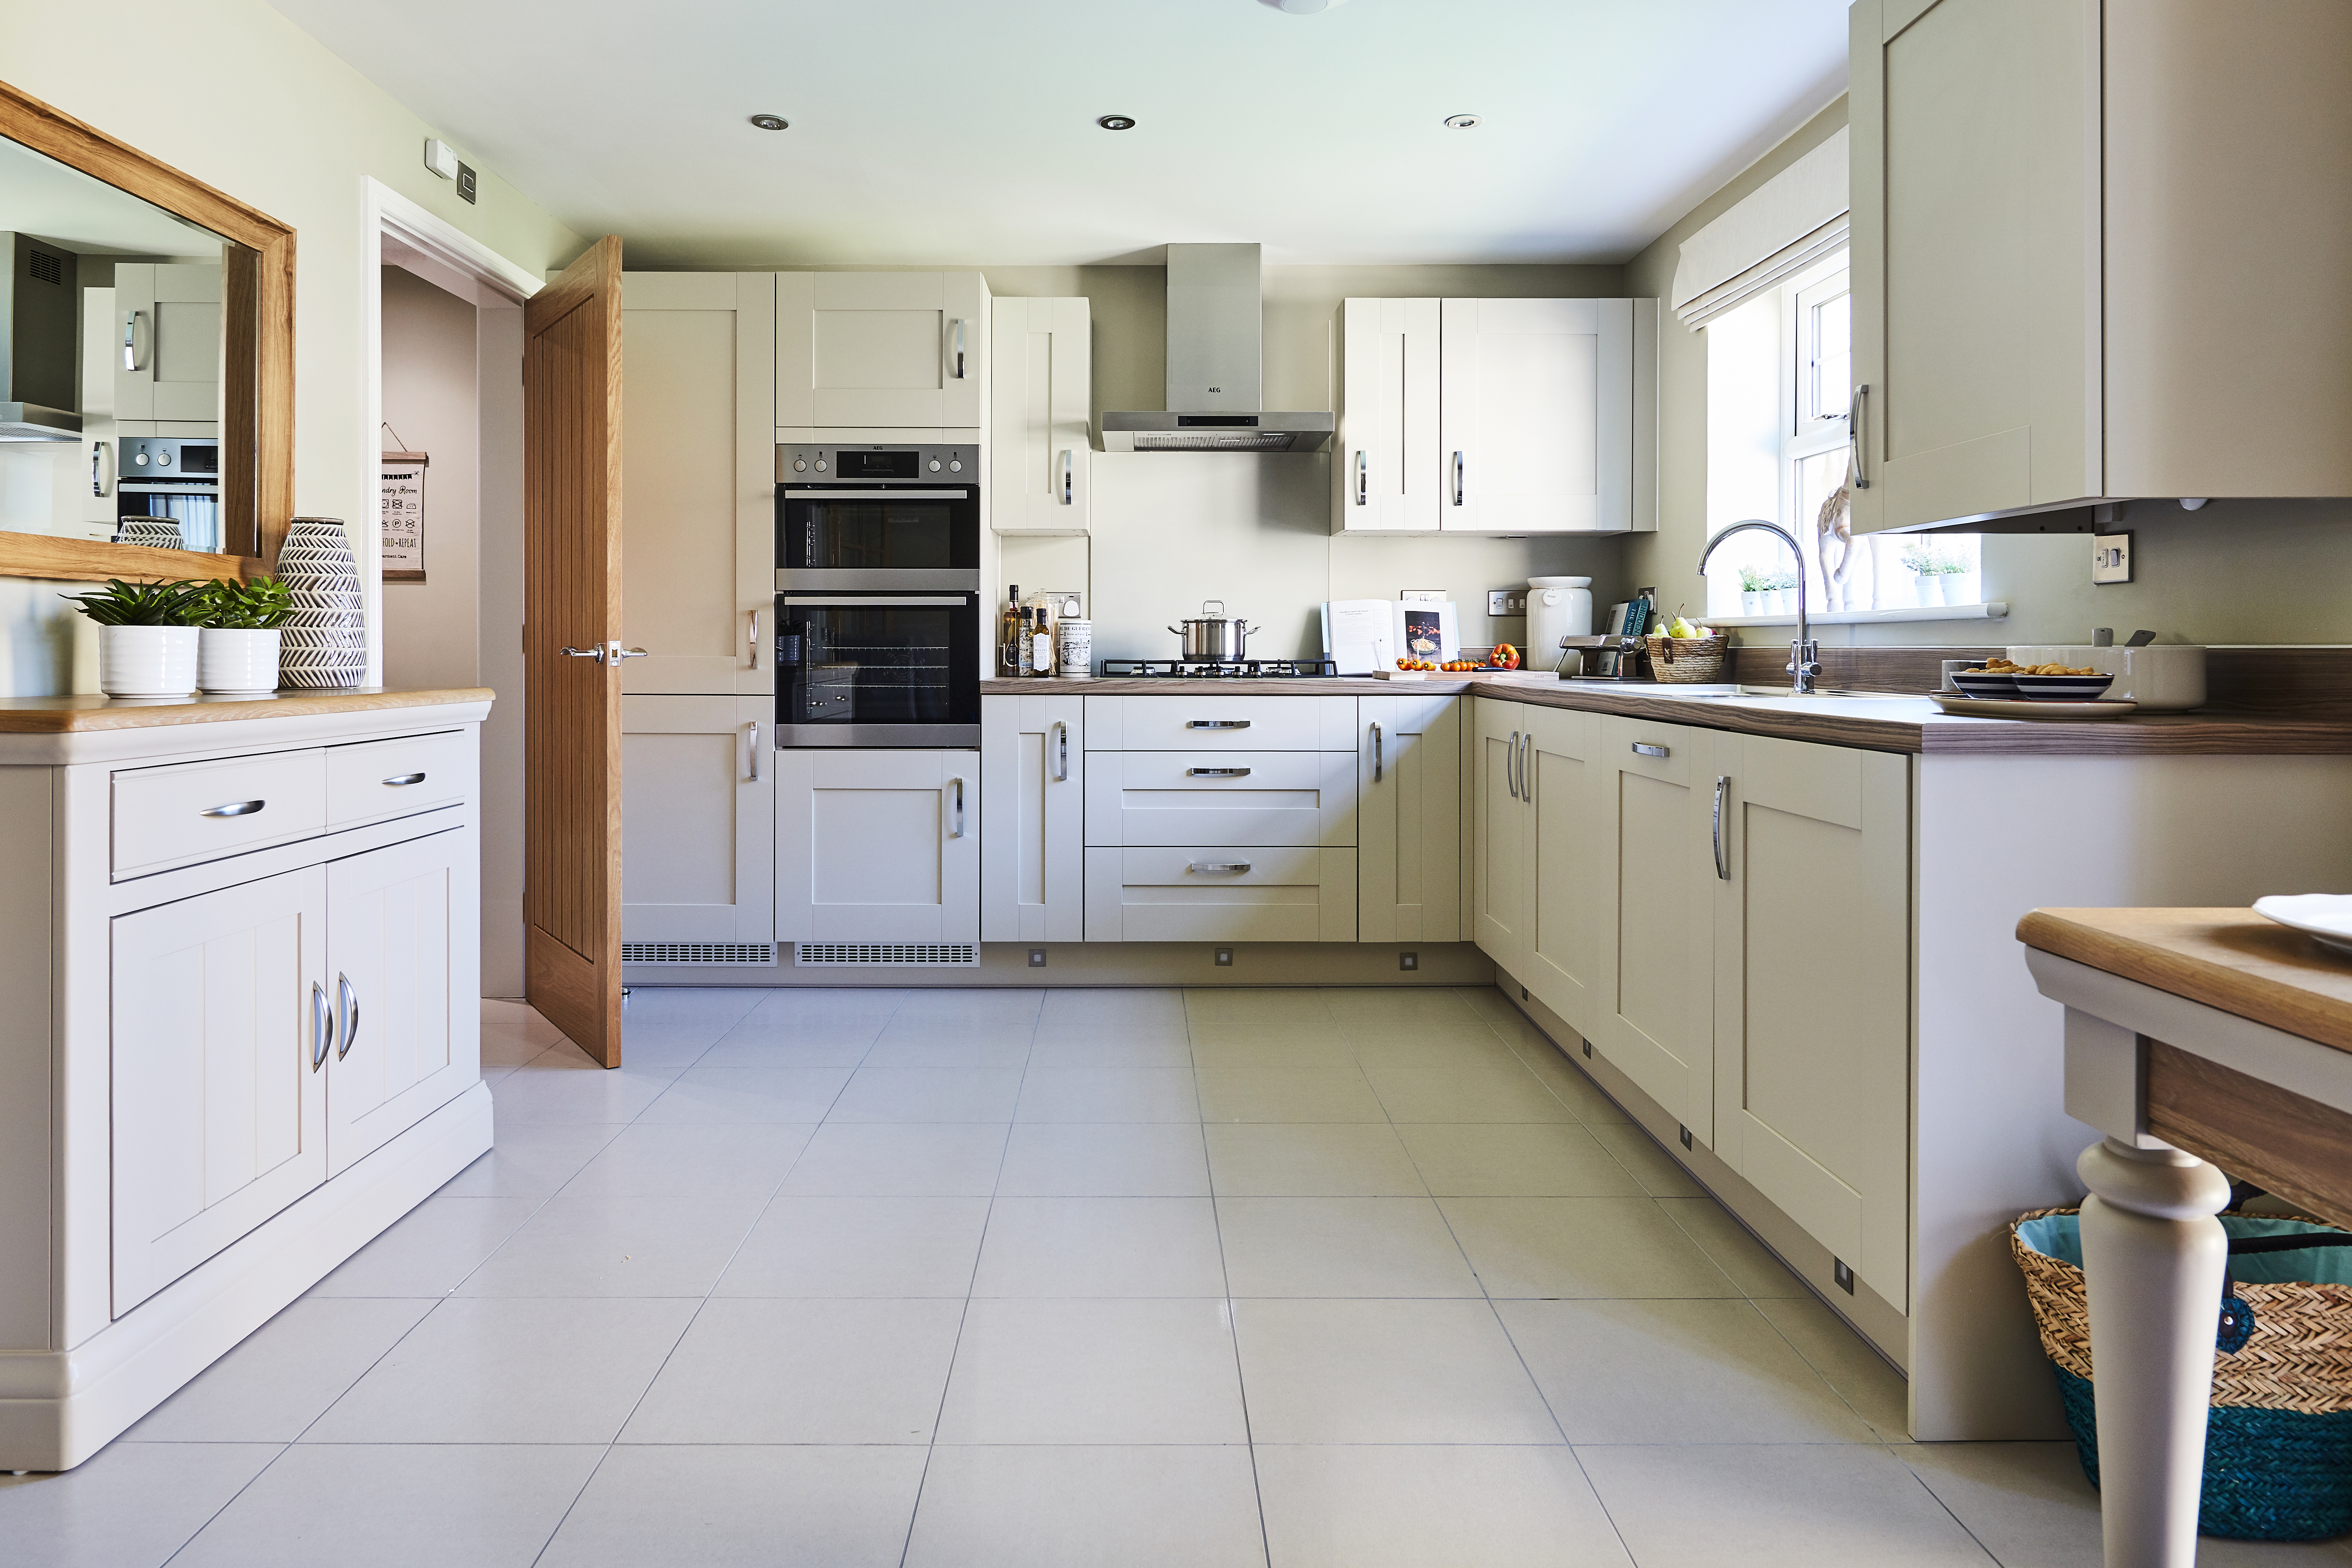 TW Man_Half Penny Meadows_Clitheroe_PA42_Lydford_Kitchen